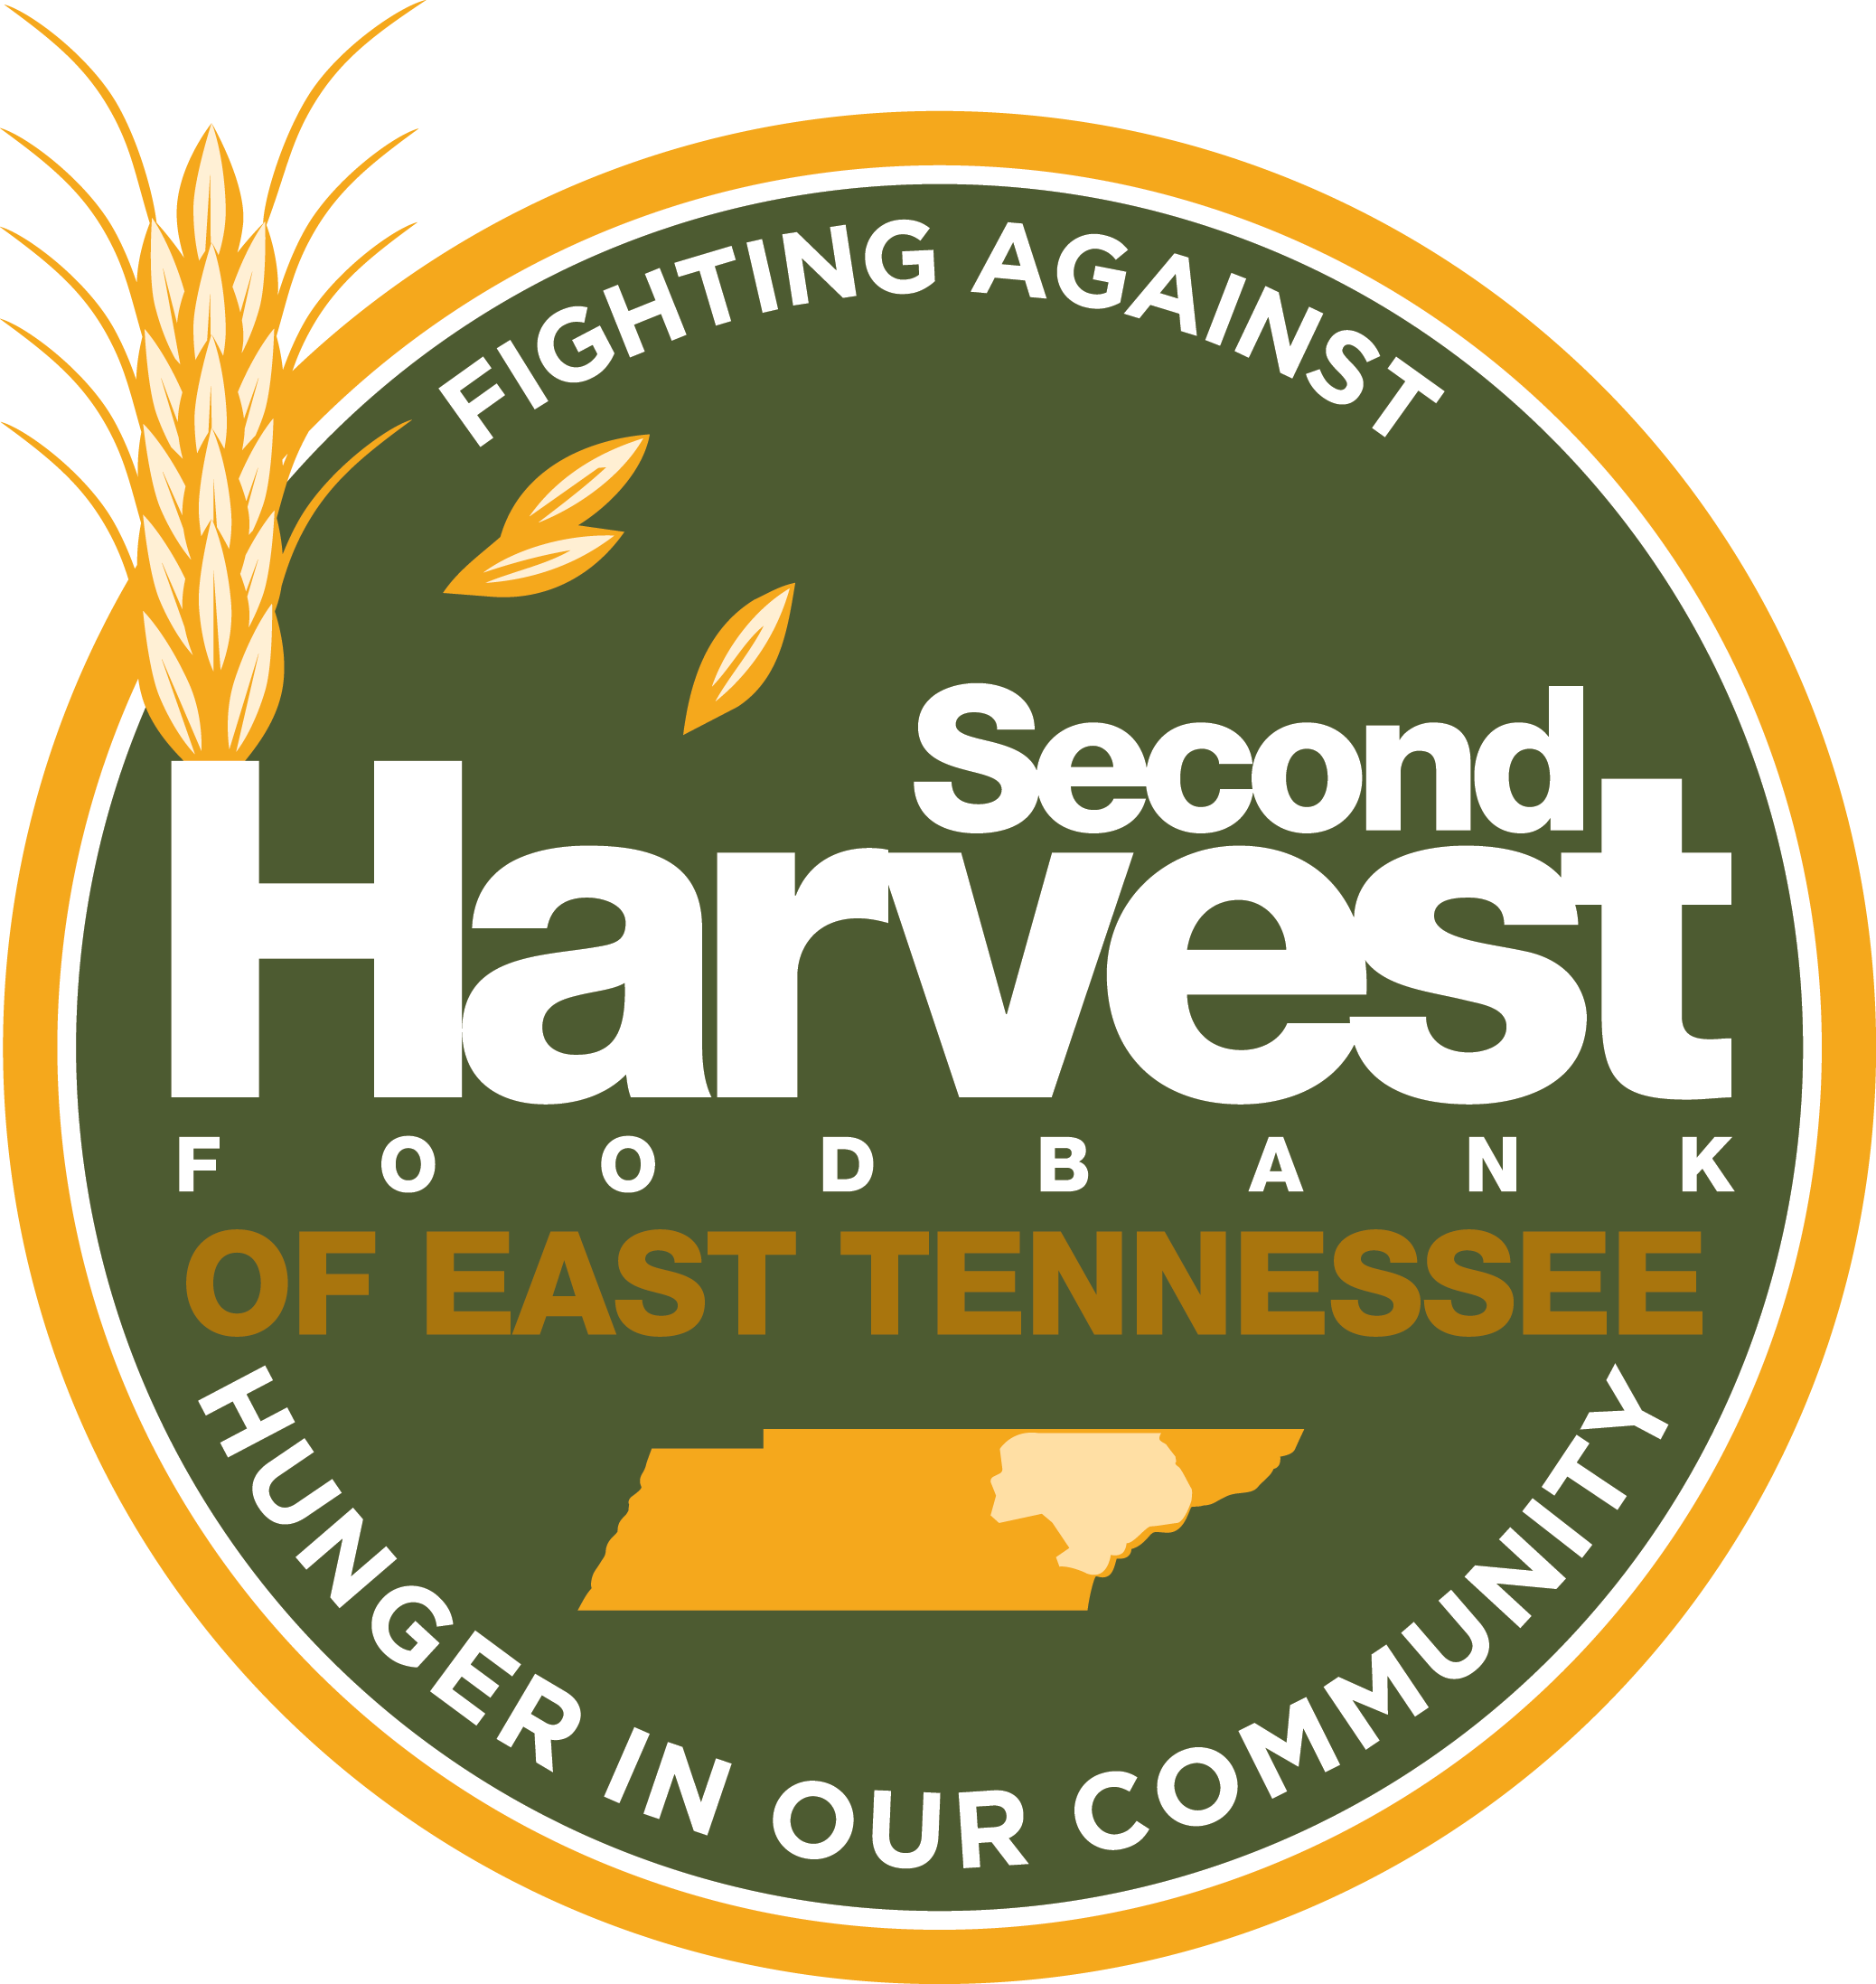 Harvest clipart motive. Second of east tennessee